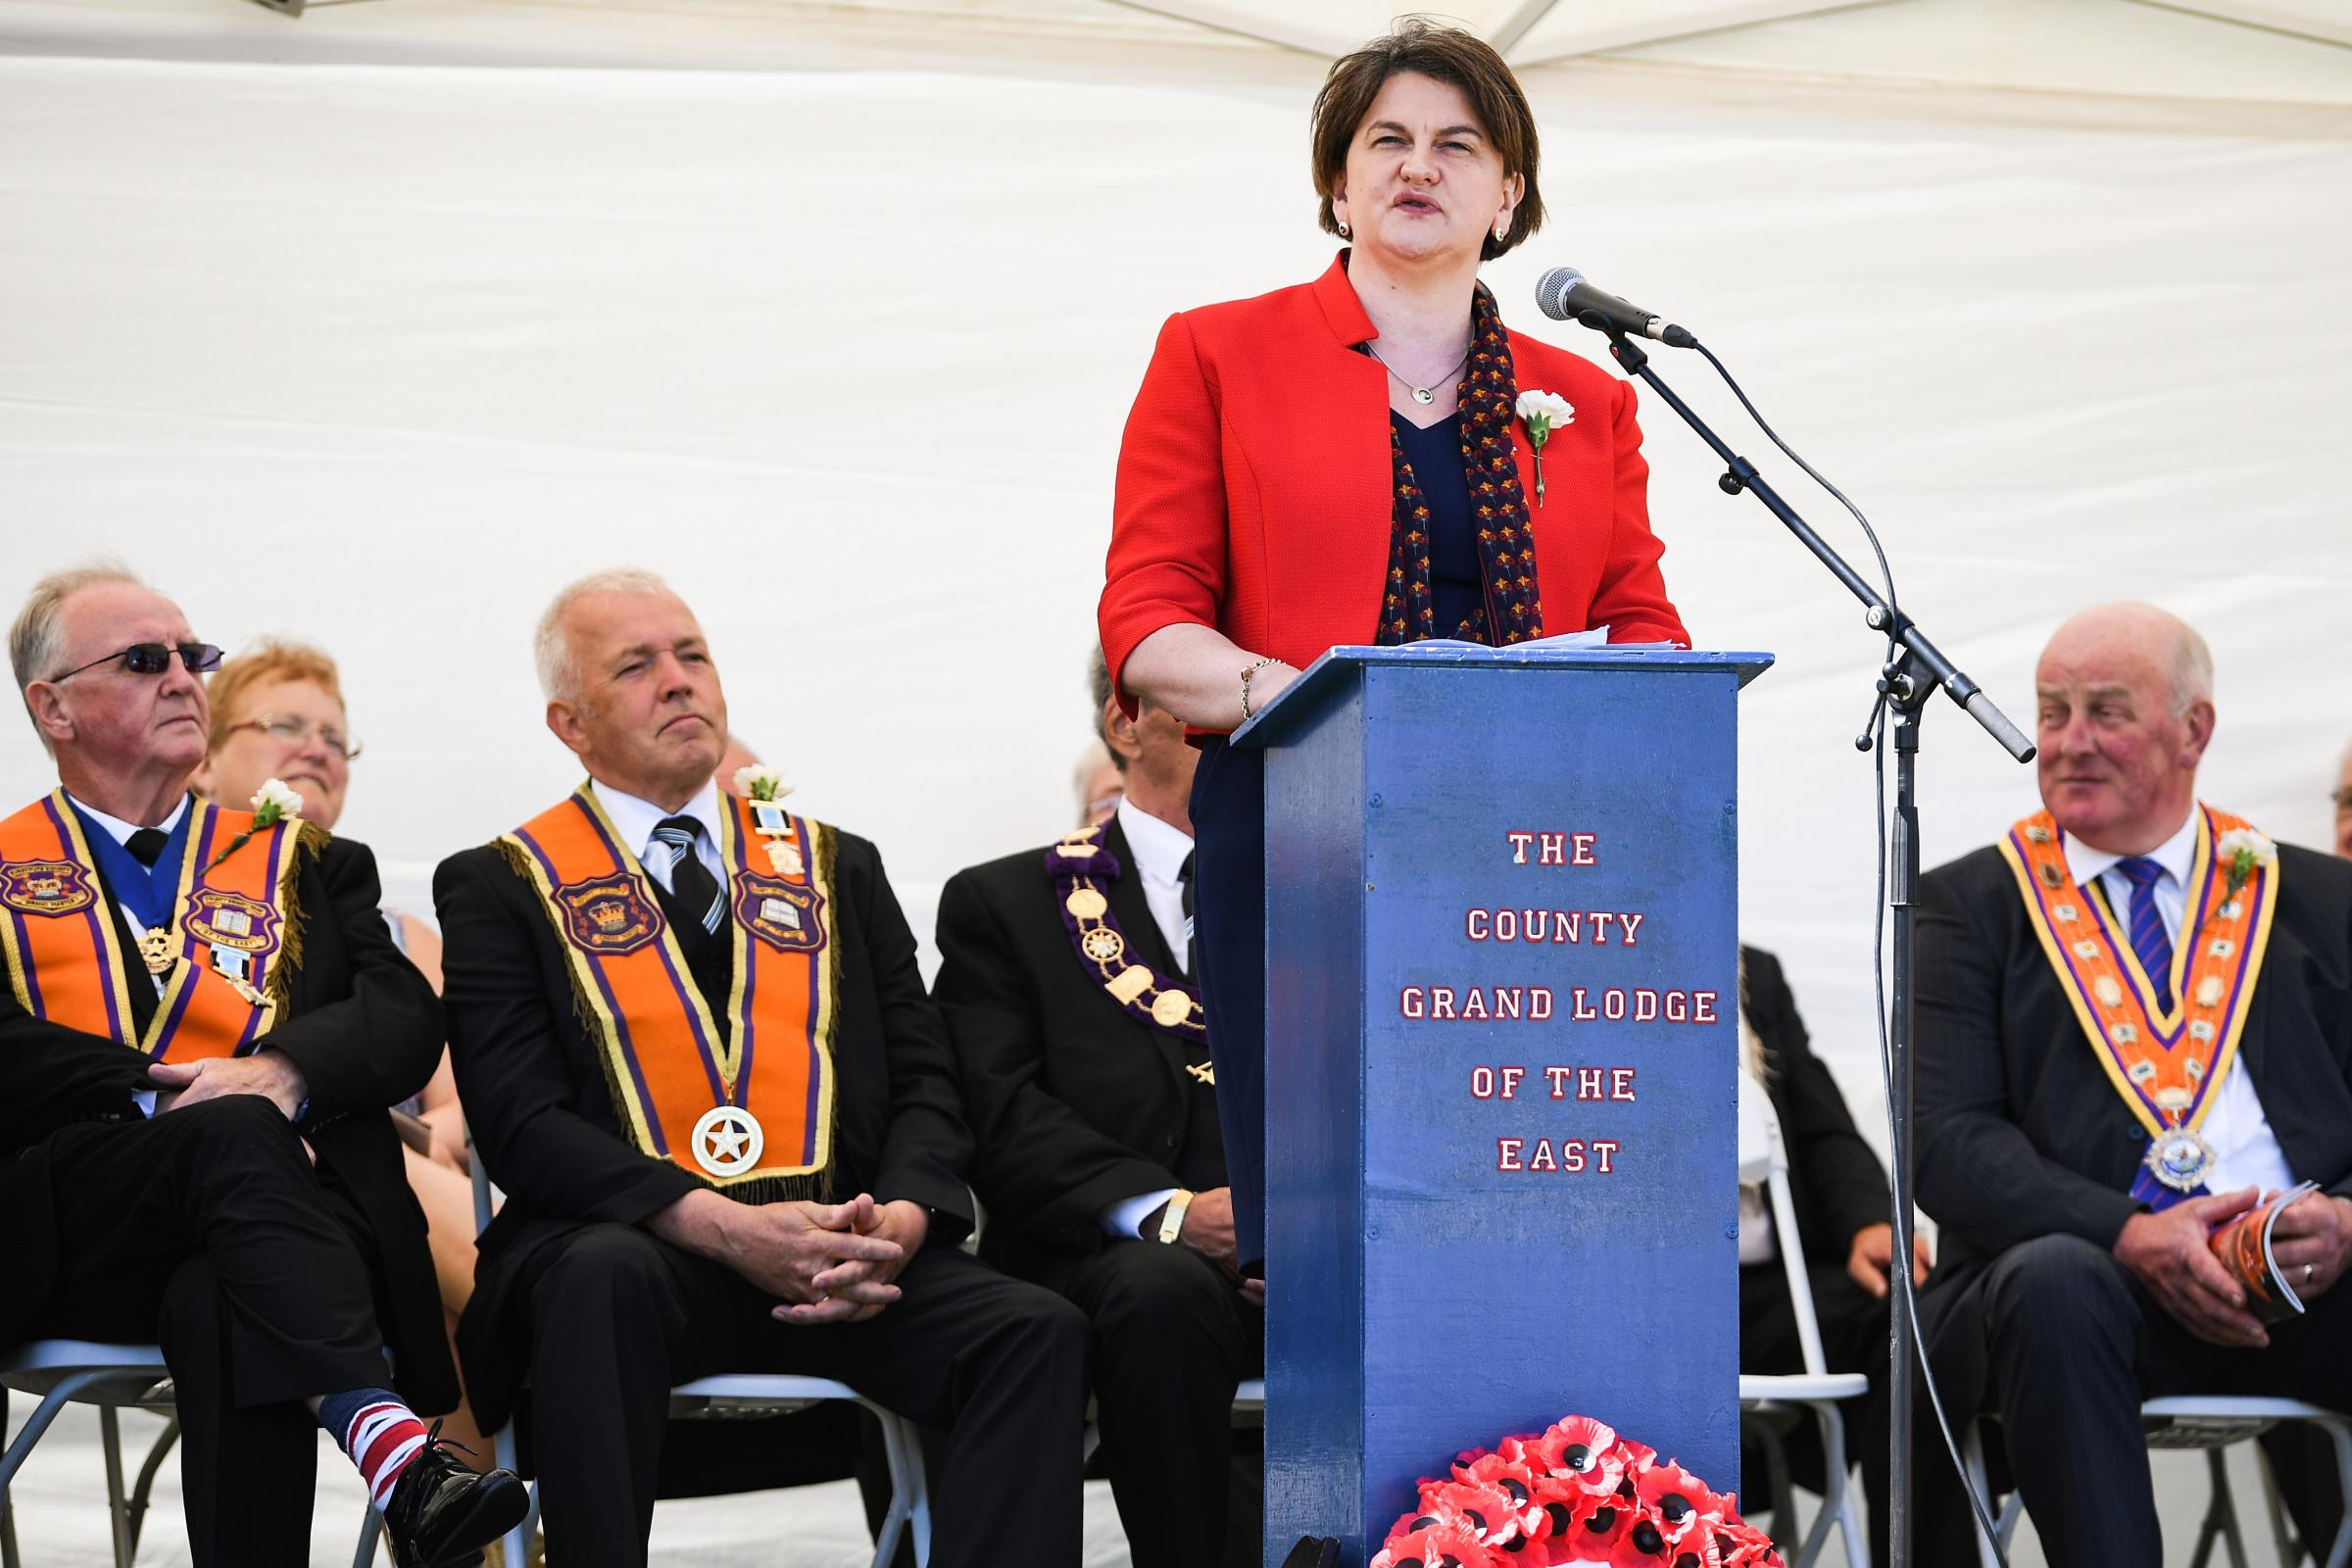 Arlene Foster was the keynote speaker at a recent Orange walk in Fife